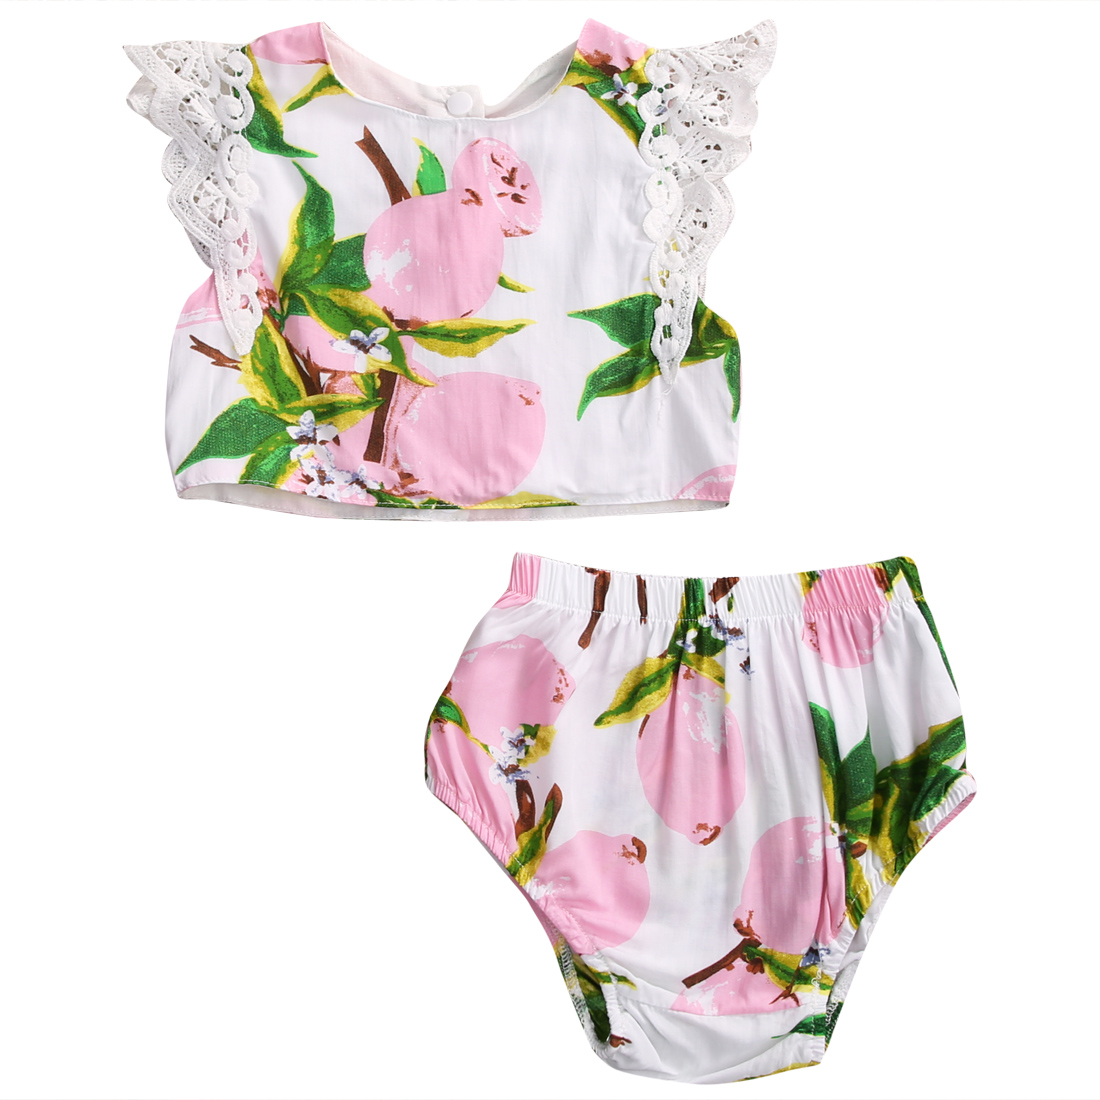 Newborn Baby Girl Clothes Set 2Pcs Set Floral Baby Girls Clothes Lace Sleeve Tops Pants Shorts Summer Outfits<br><br>Aliexpress